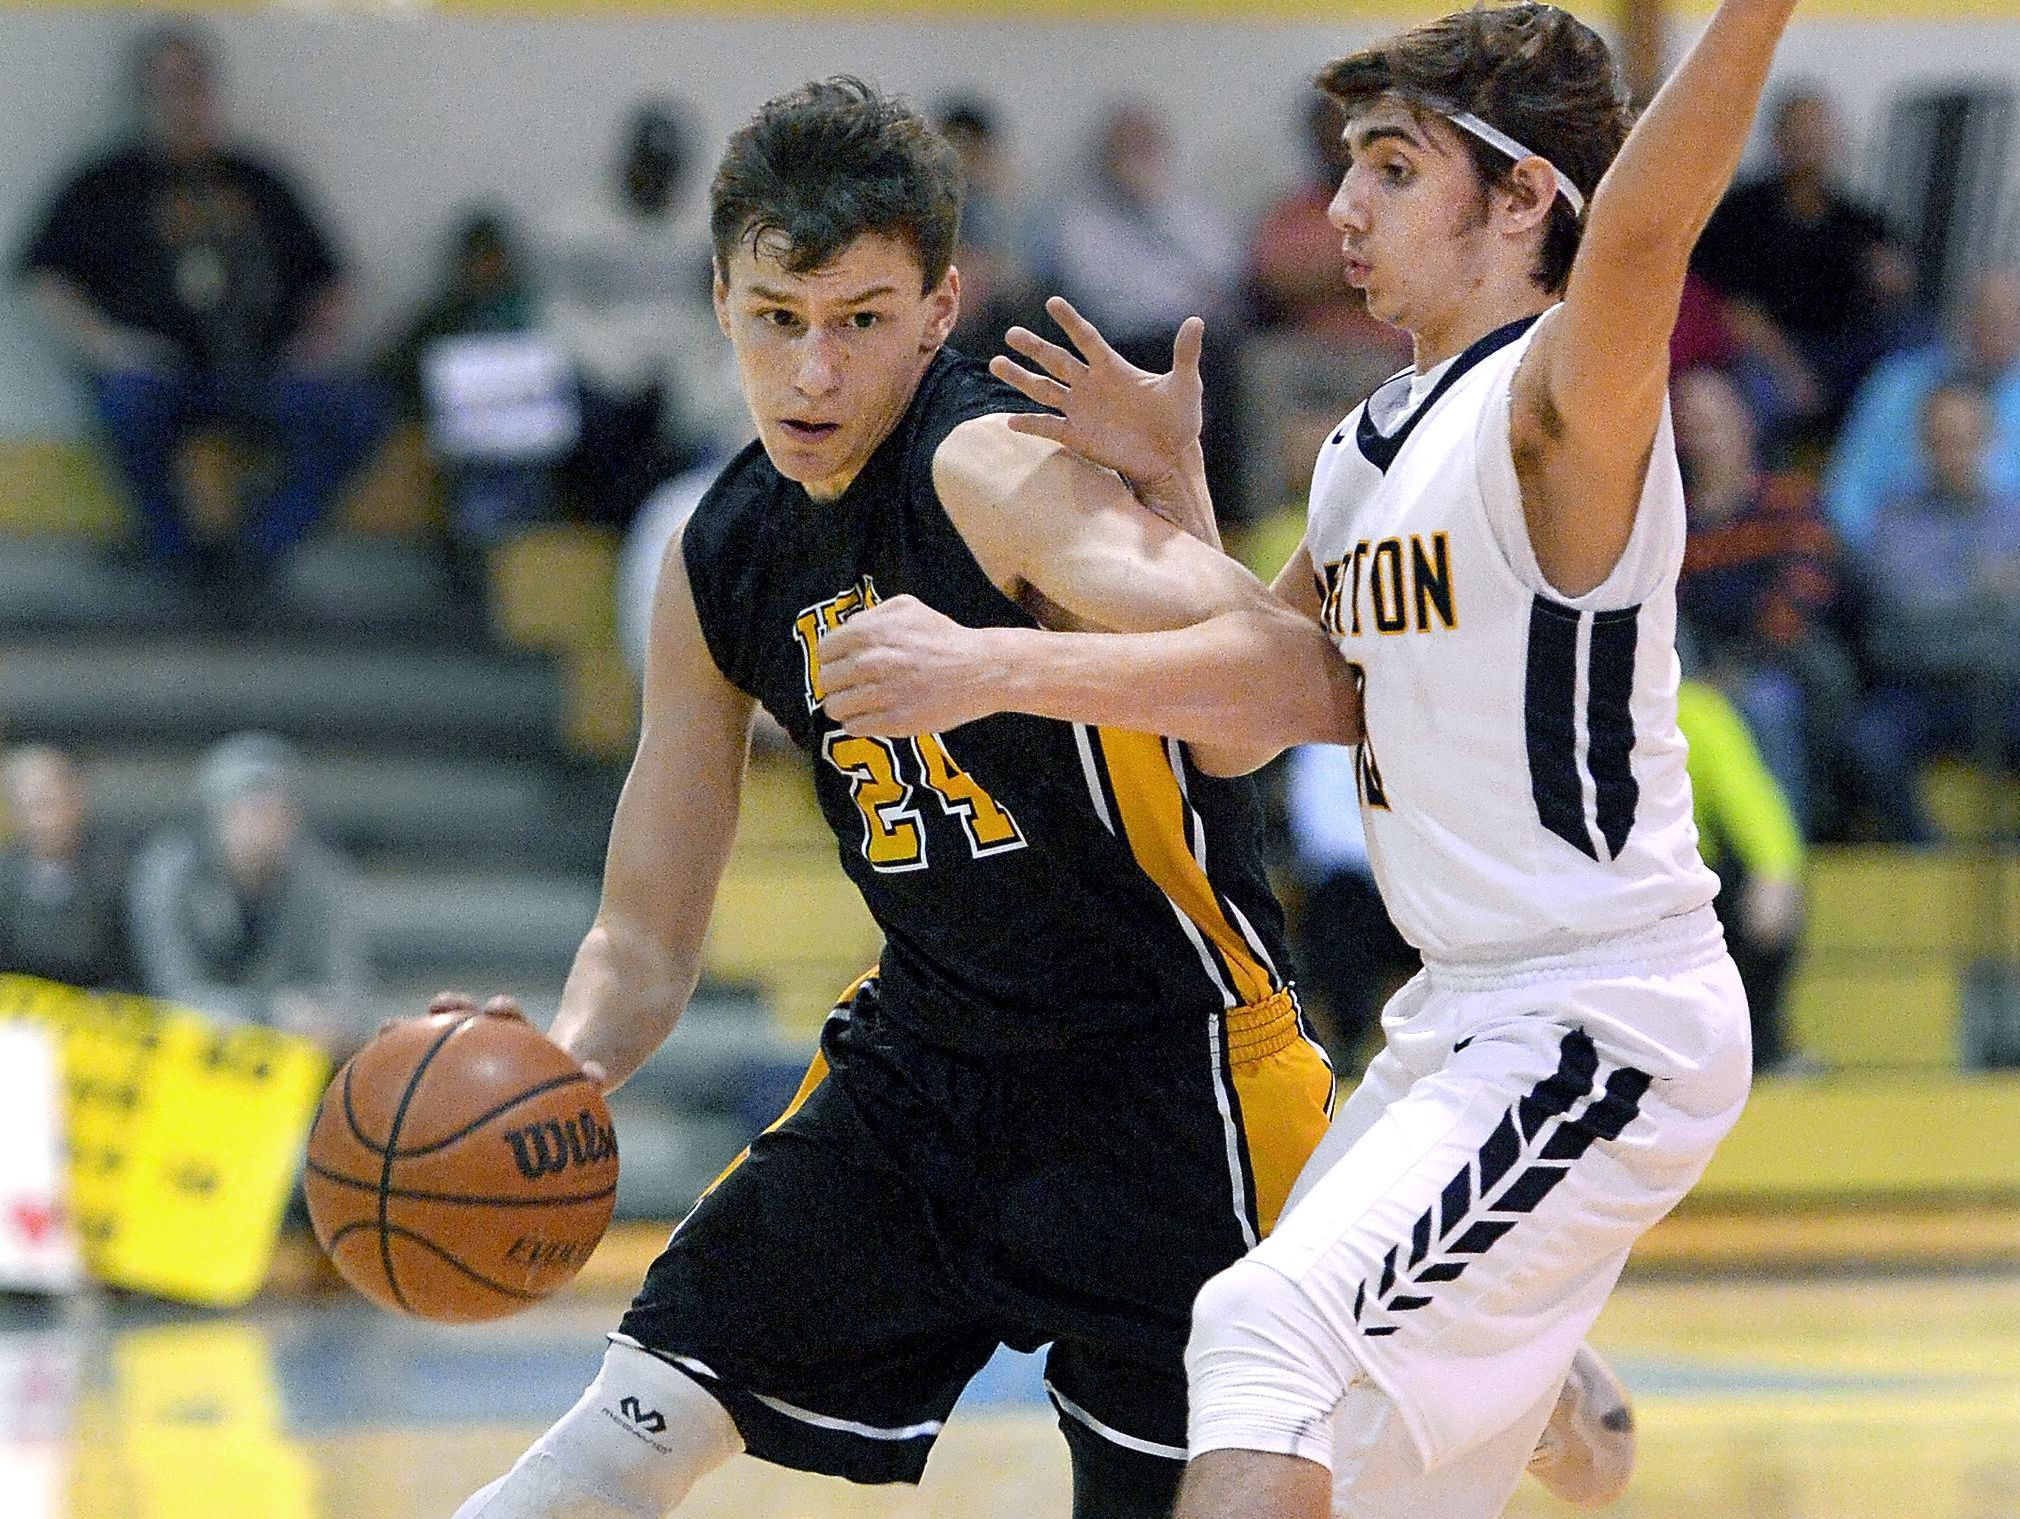 Honeoye Falls-Lima's Tommy Eastman, left, drives by Brighton's Michael Liberti during a game played at Brighton High School on Wednesday, Feb. 3, 2016. Eastman scored 25 points in the game, which HF-L won, 54-43.